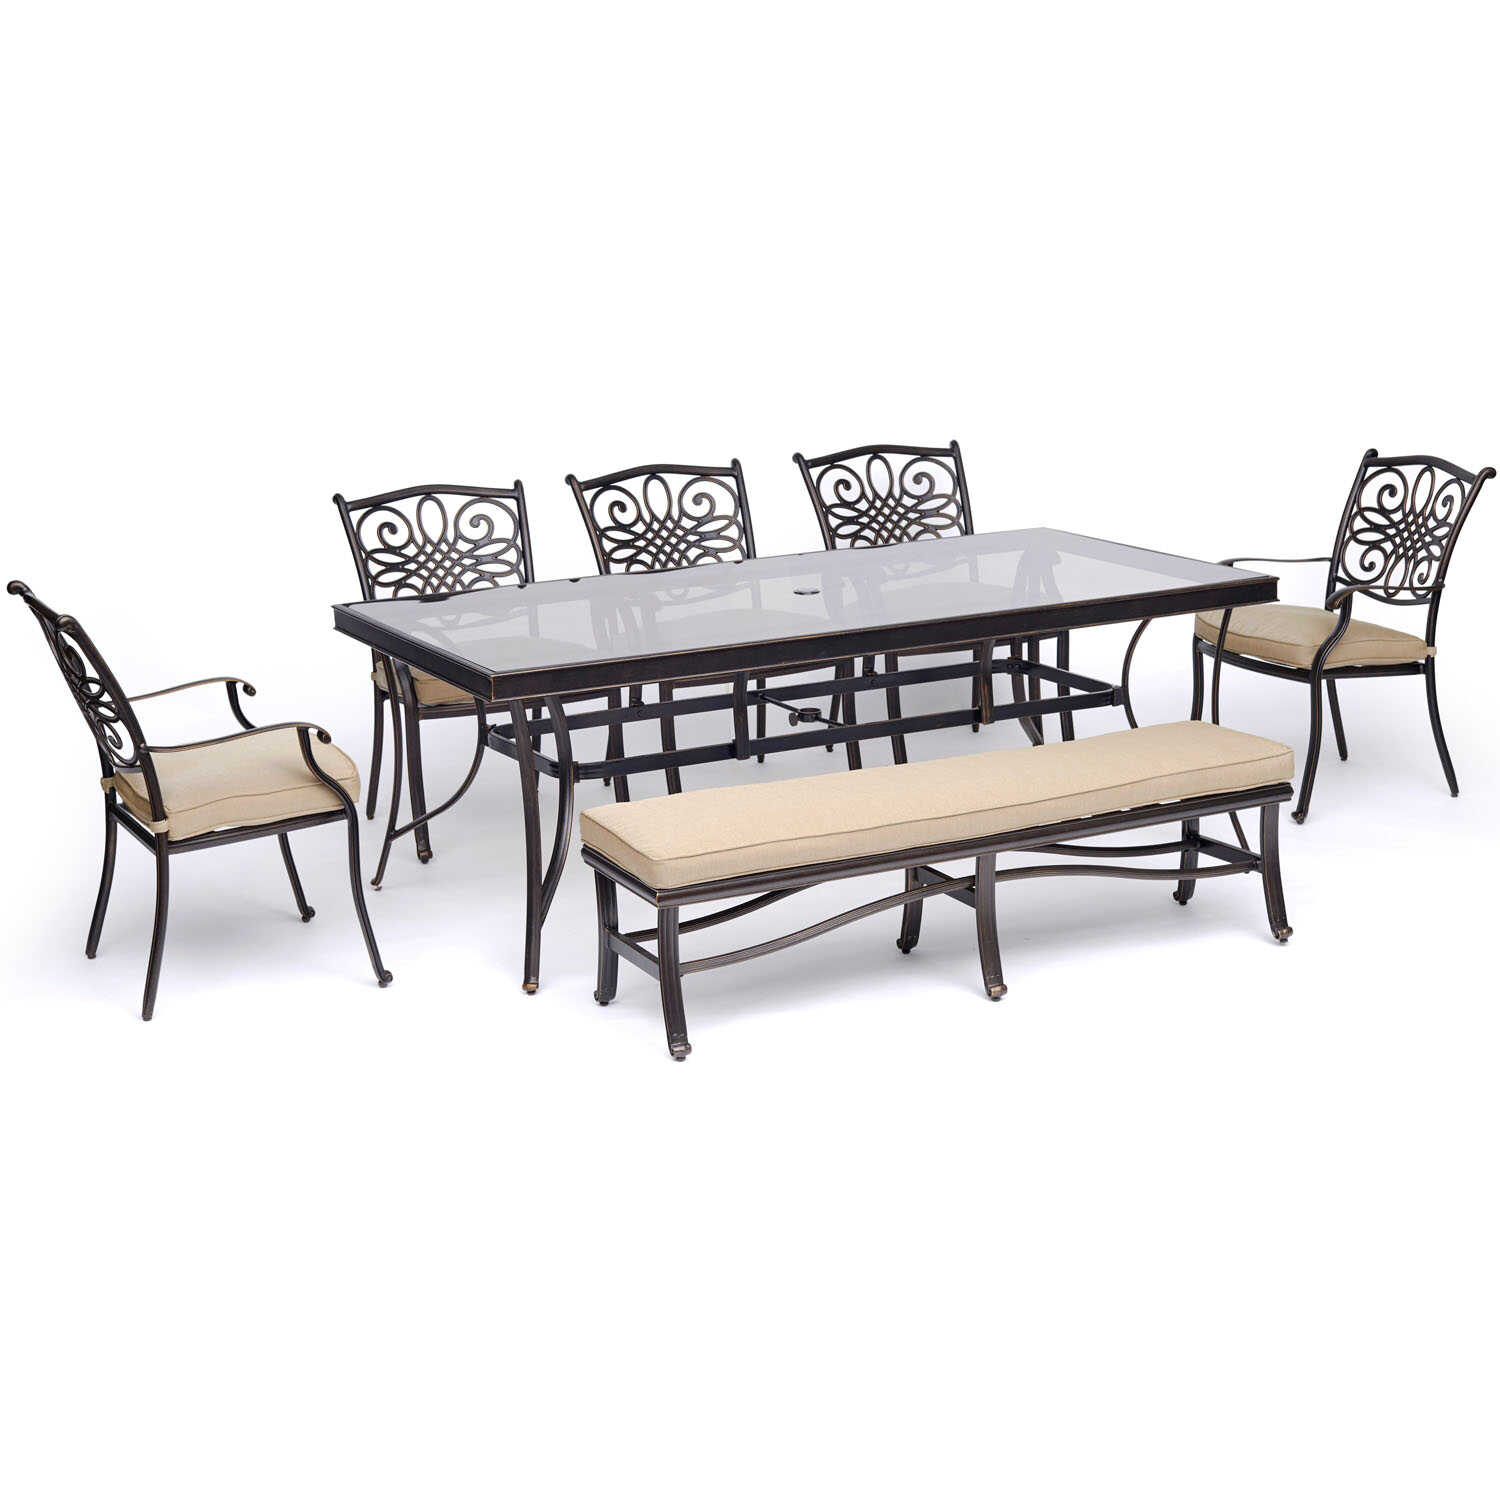 Hanover  Traditions  7 pc. Bronze  Aluminum  Patio Set  Tan